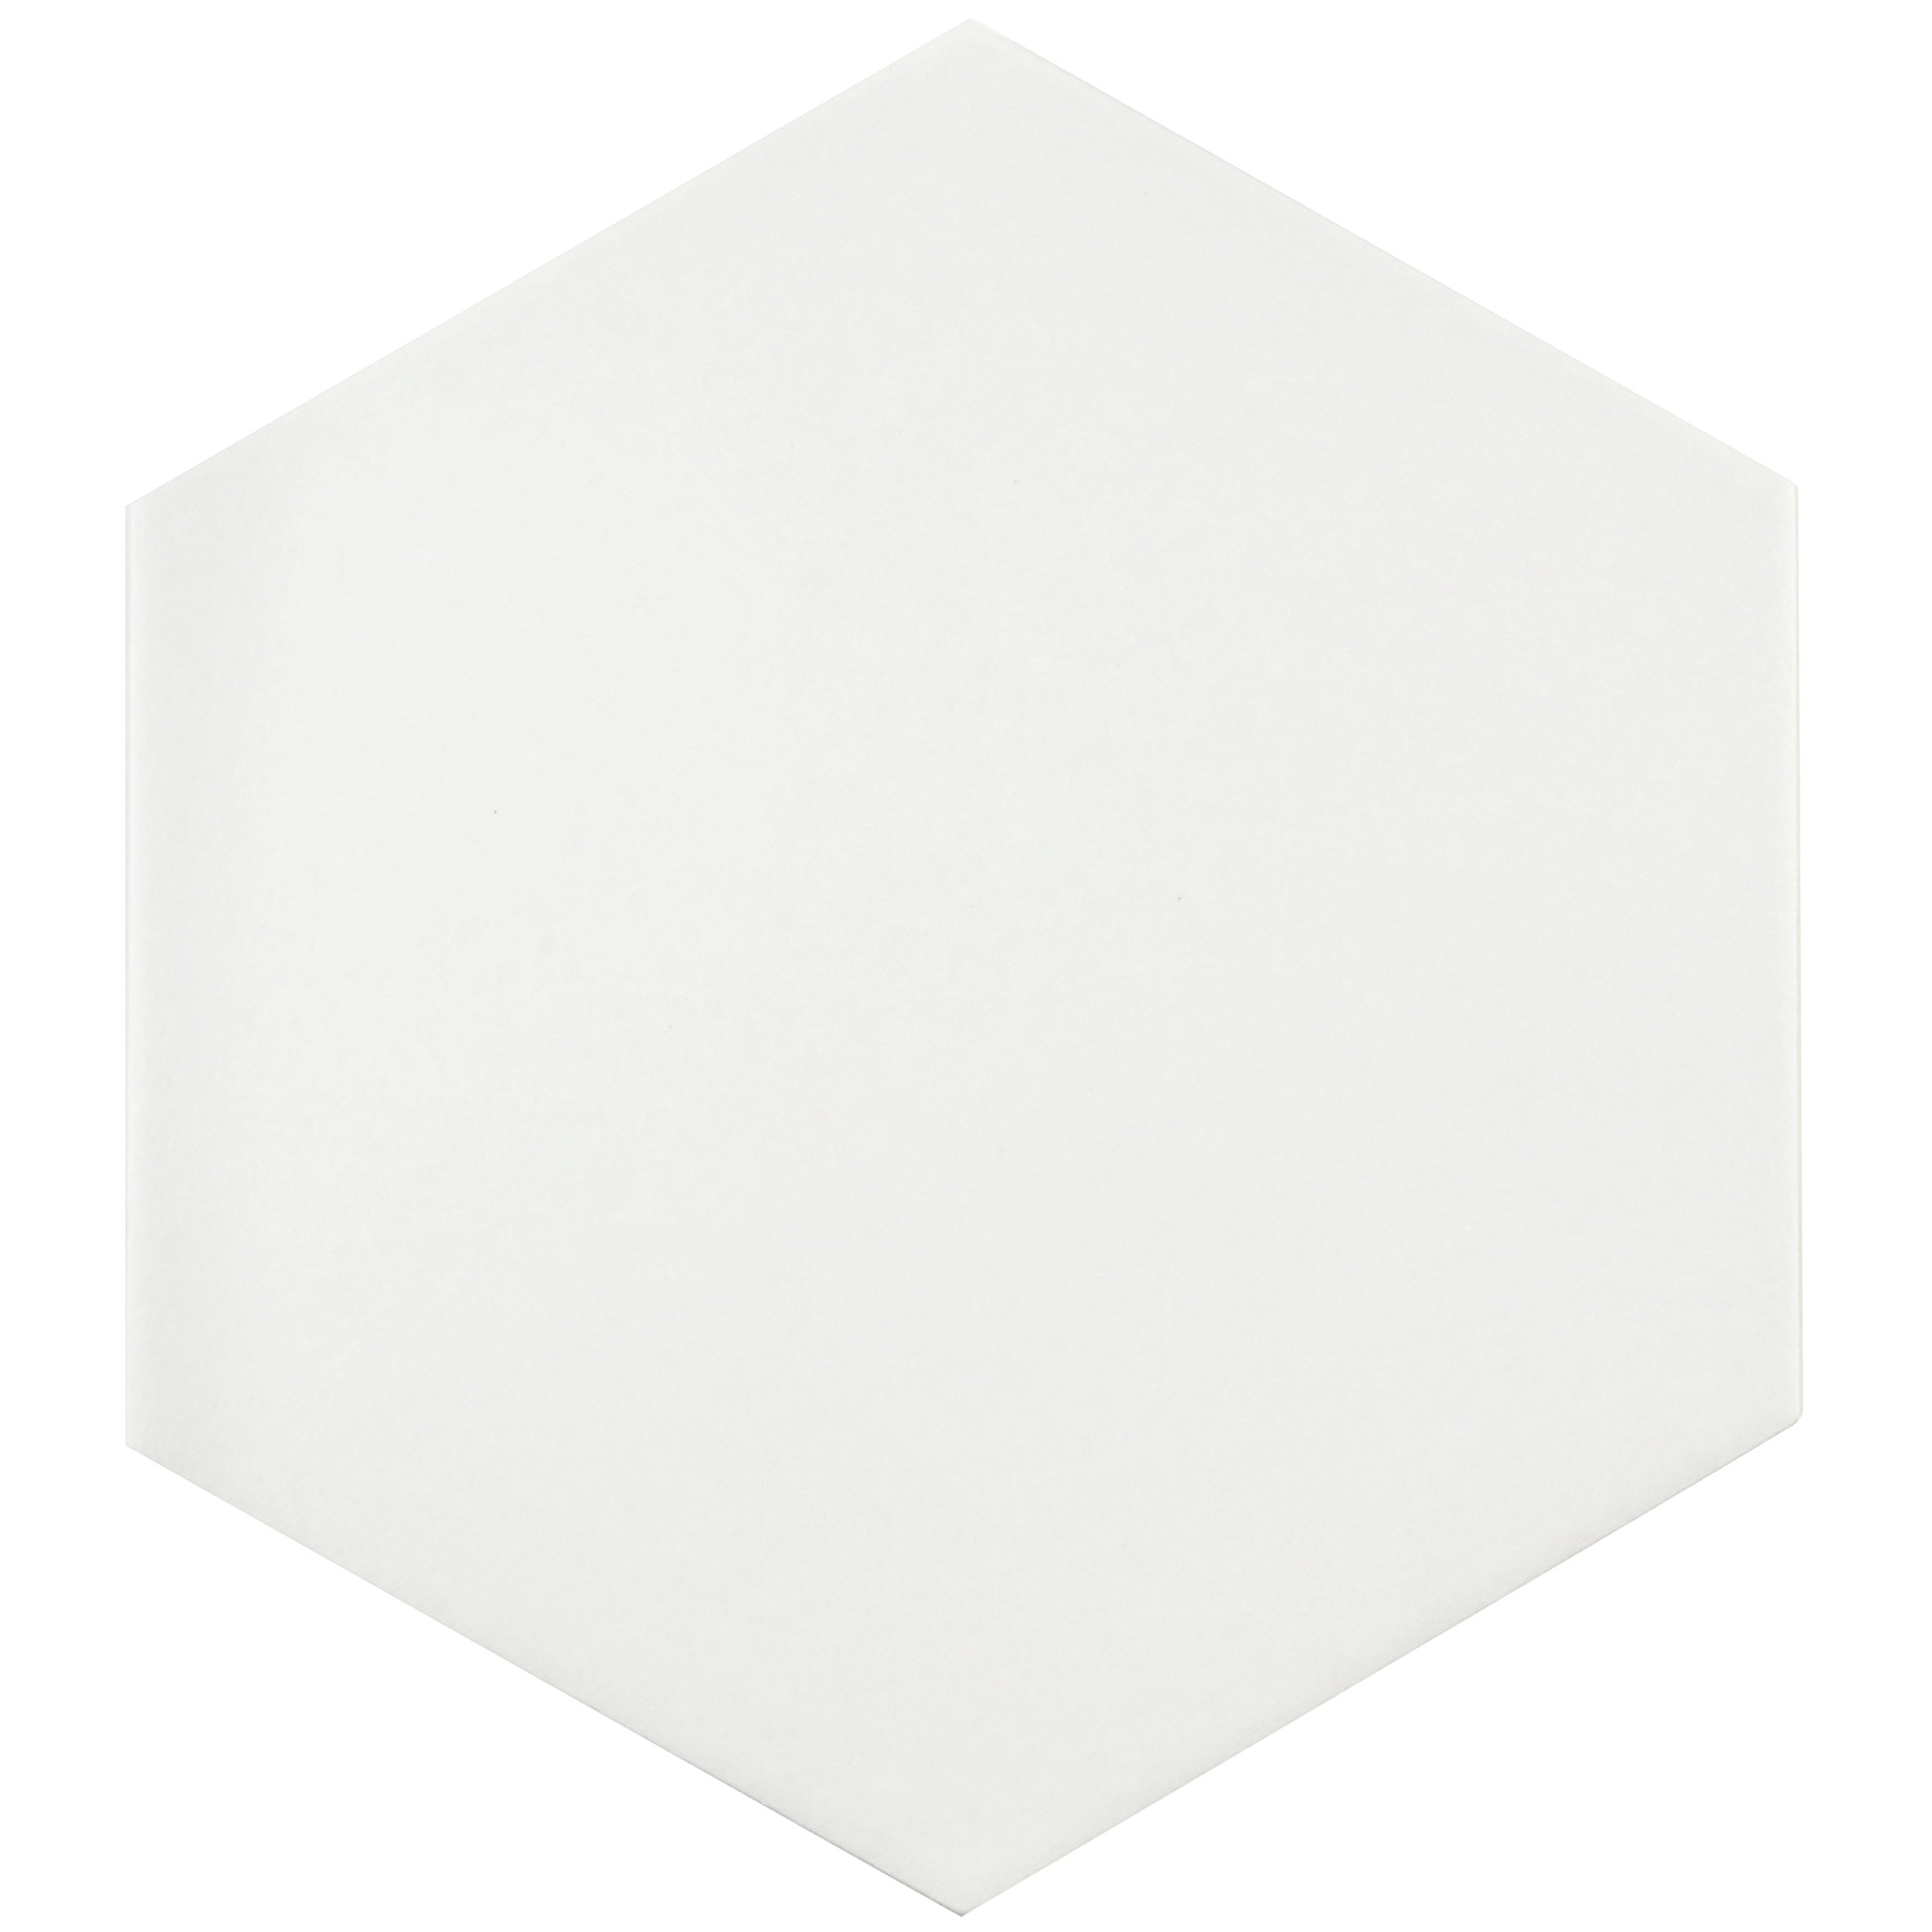 SomerTile FCD10WTX Abrique Hex Porcelain Floor and Wall Tile, 8.625'' x 9.875'', White by SOMERTILE